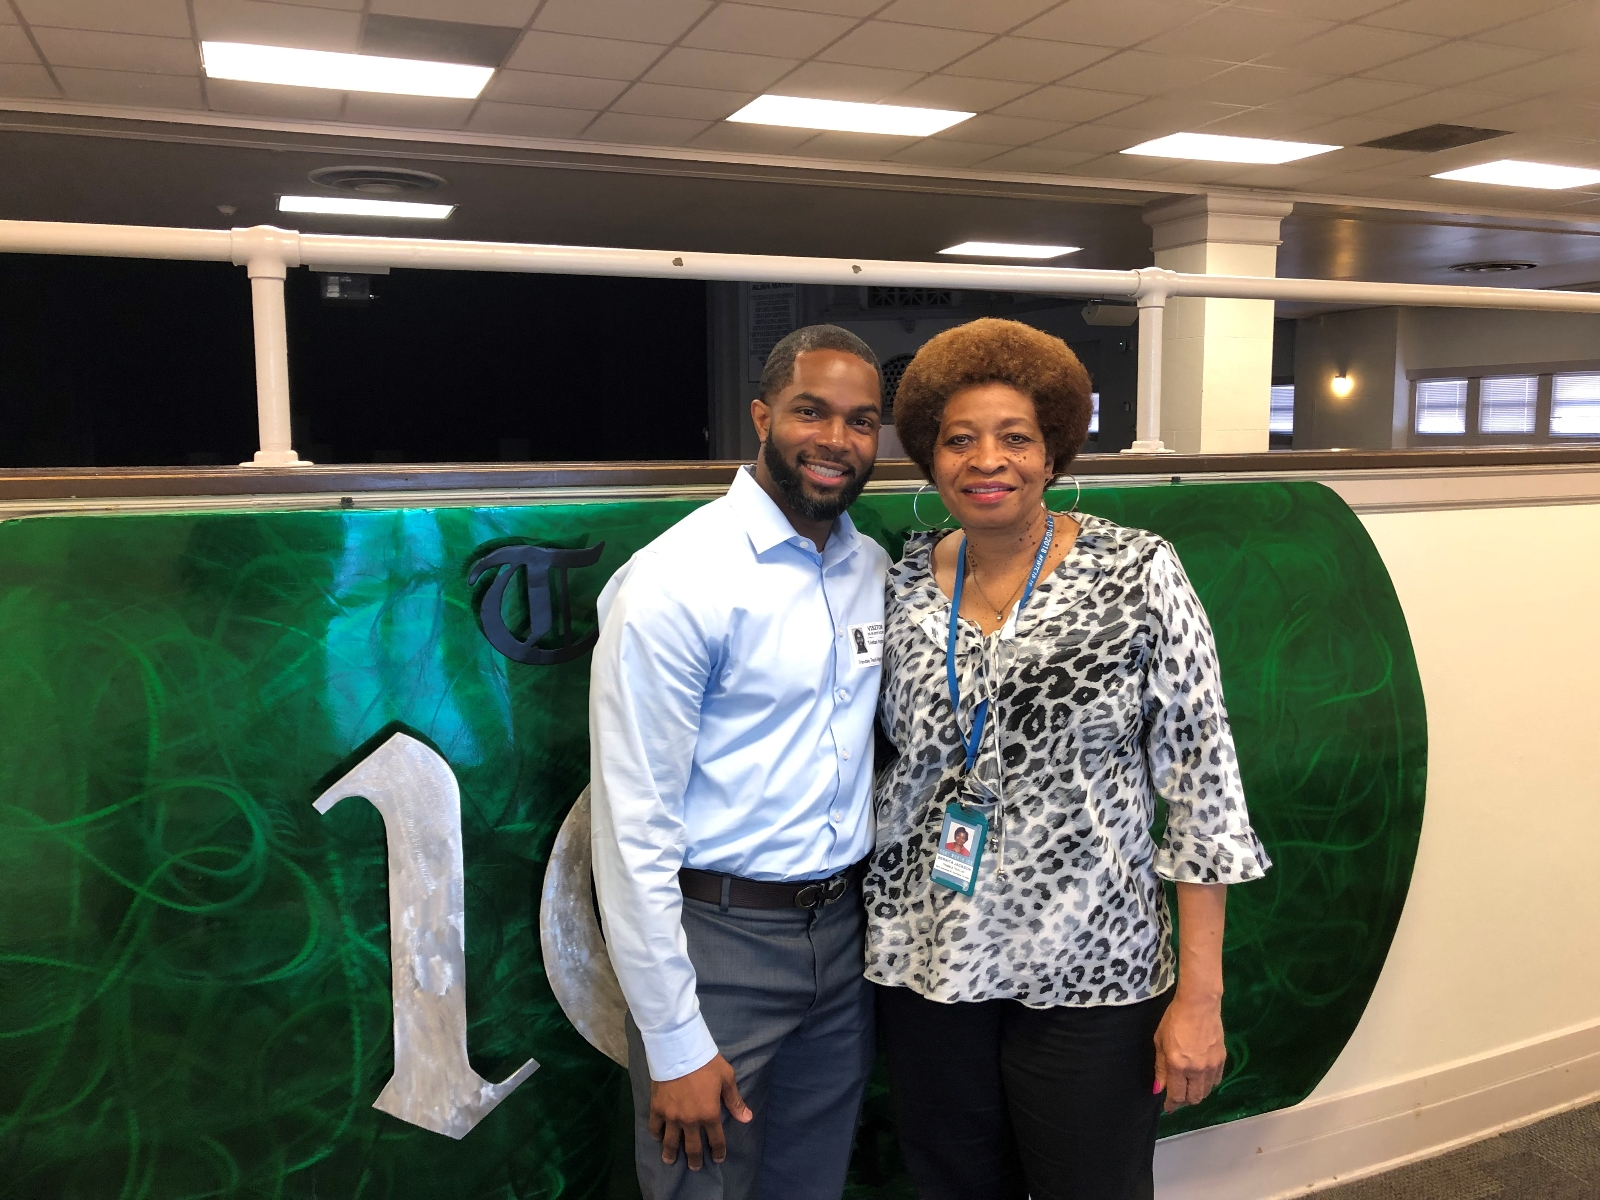 May Alumni Watch – former troubled athlete now a doctor giving back to his alma mater, Dr. Tristan Washington